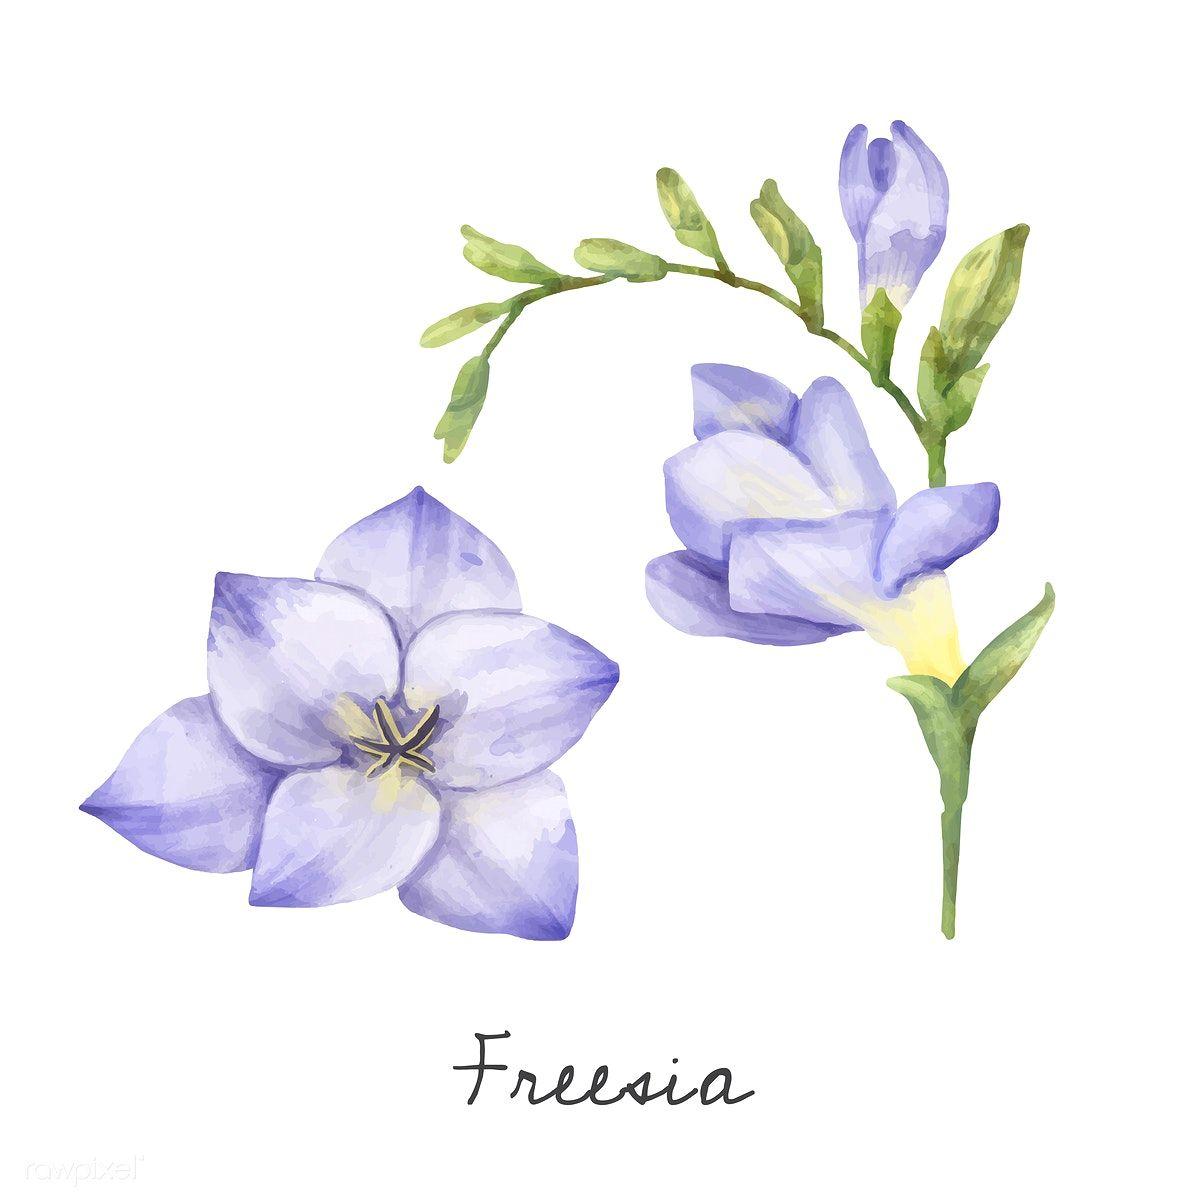 Illustration Of Freesia Flower Isolated On White Background Free Image By Rawpixel Com Flower Illustration Freesia Flowers Plant Illustration